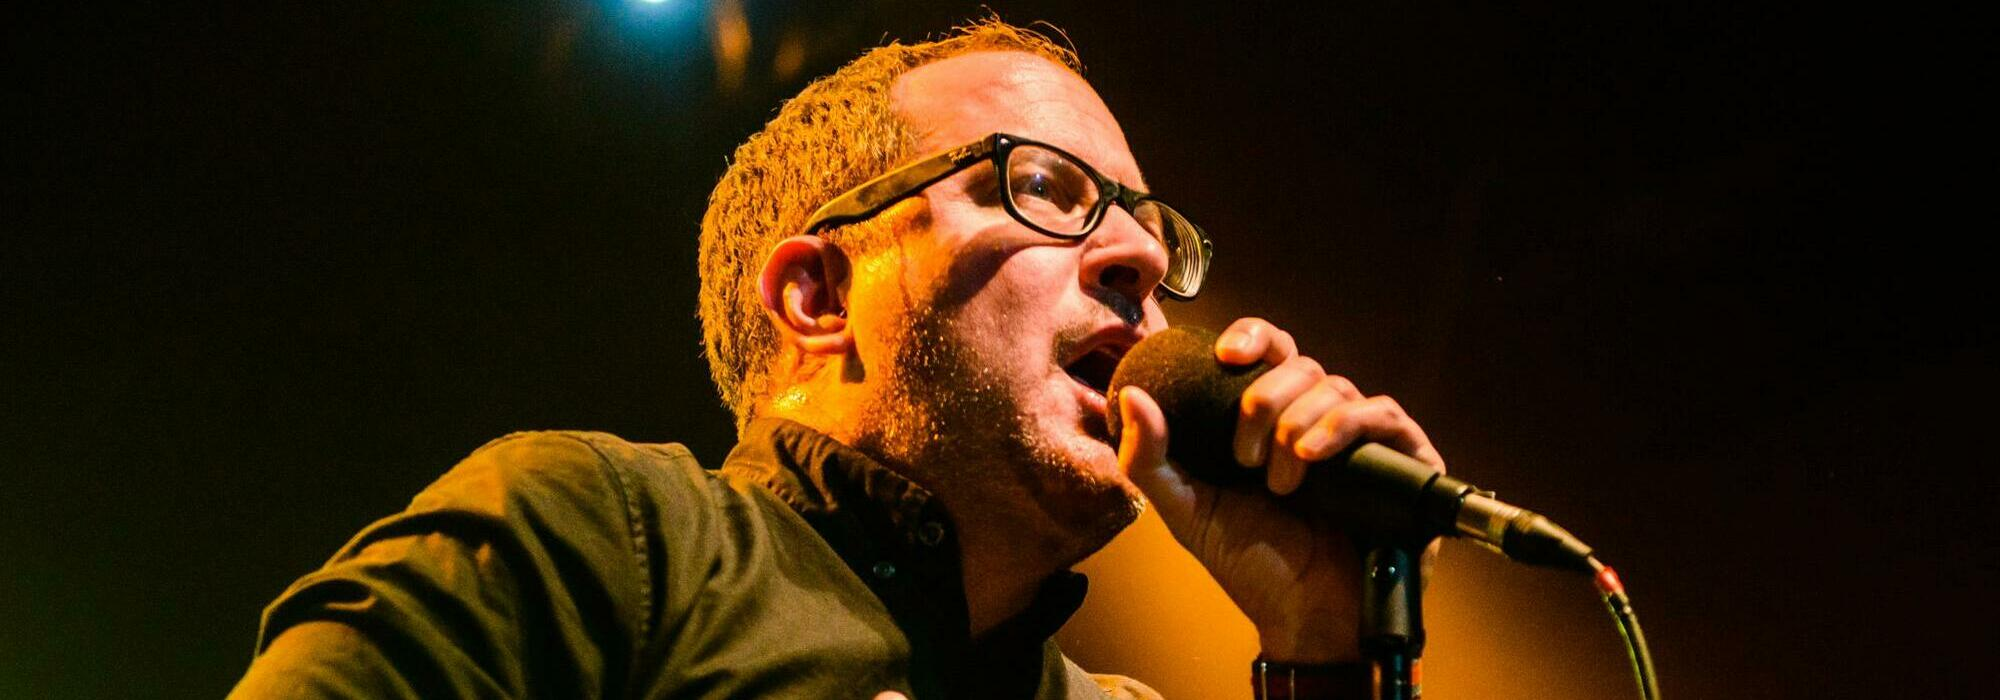 A The Hold Steady live event